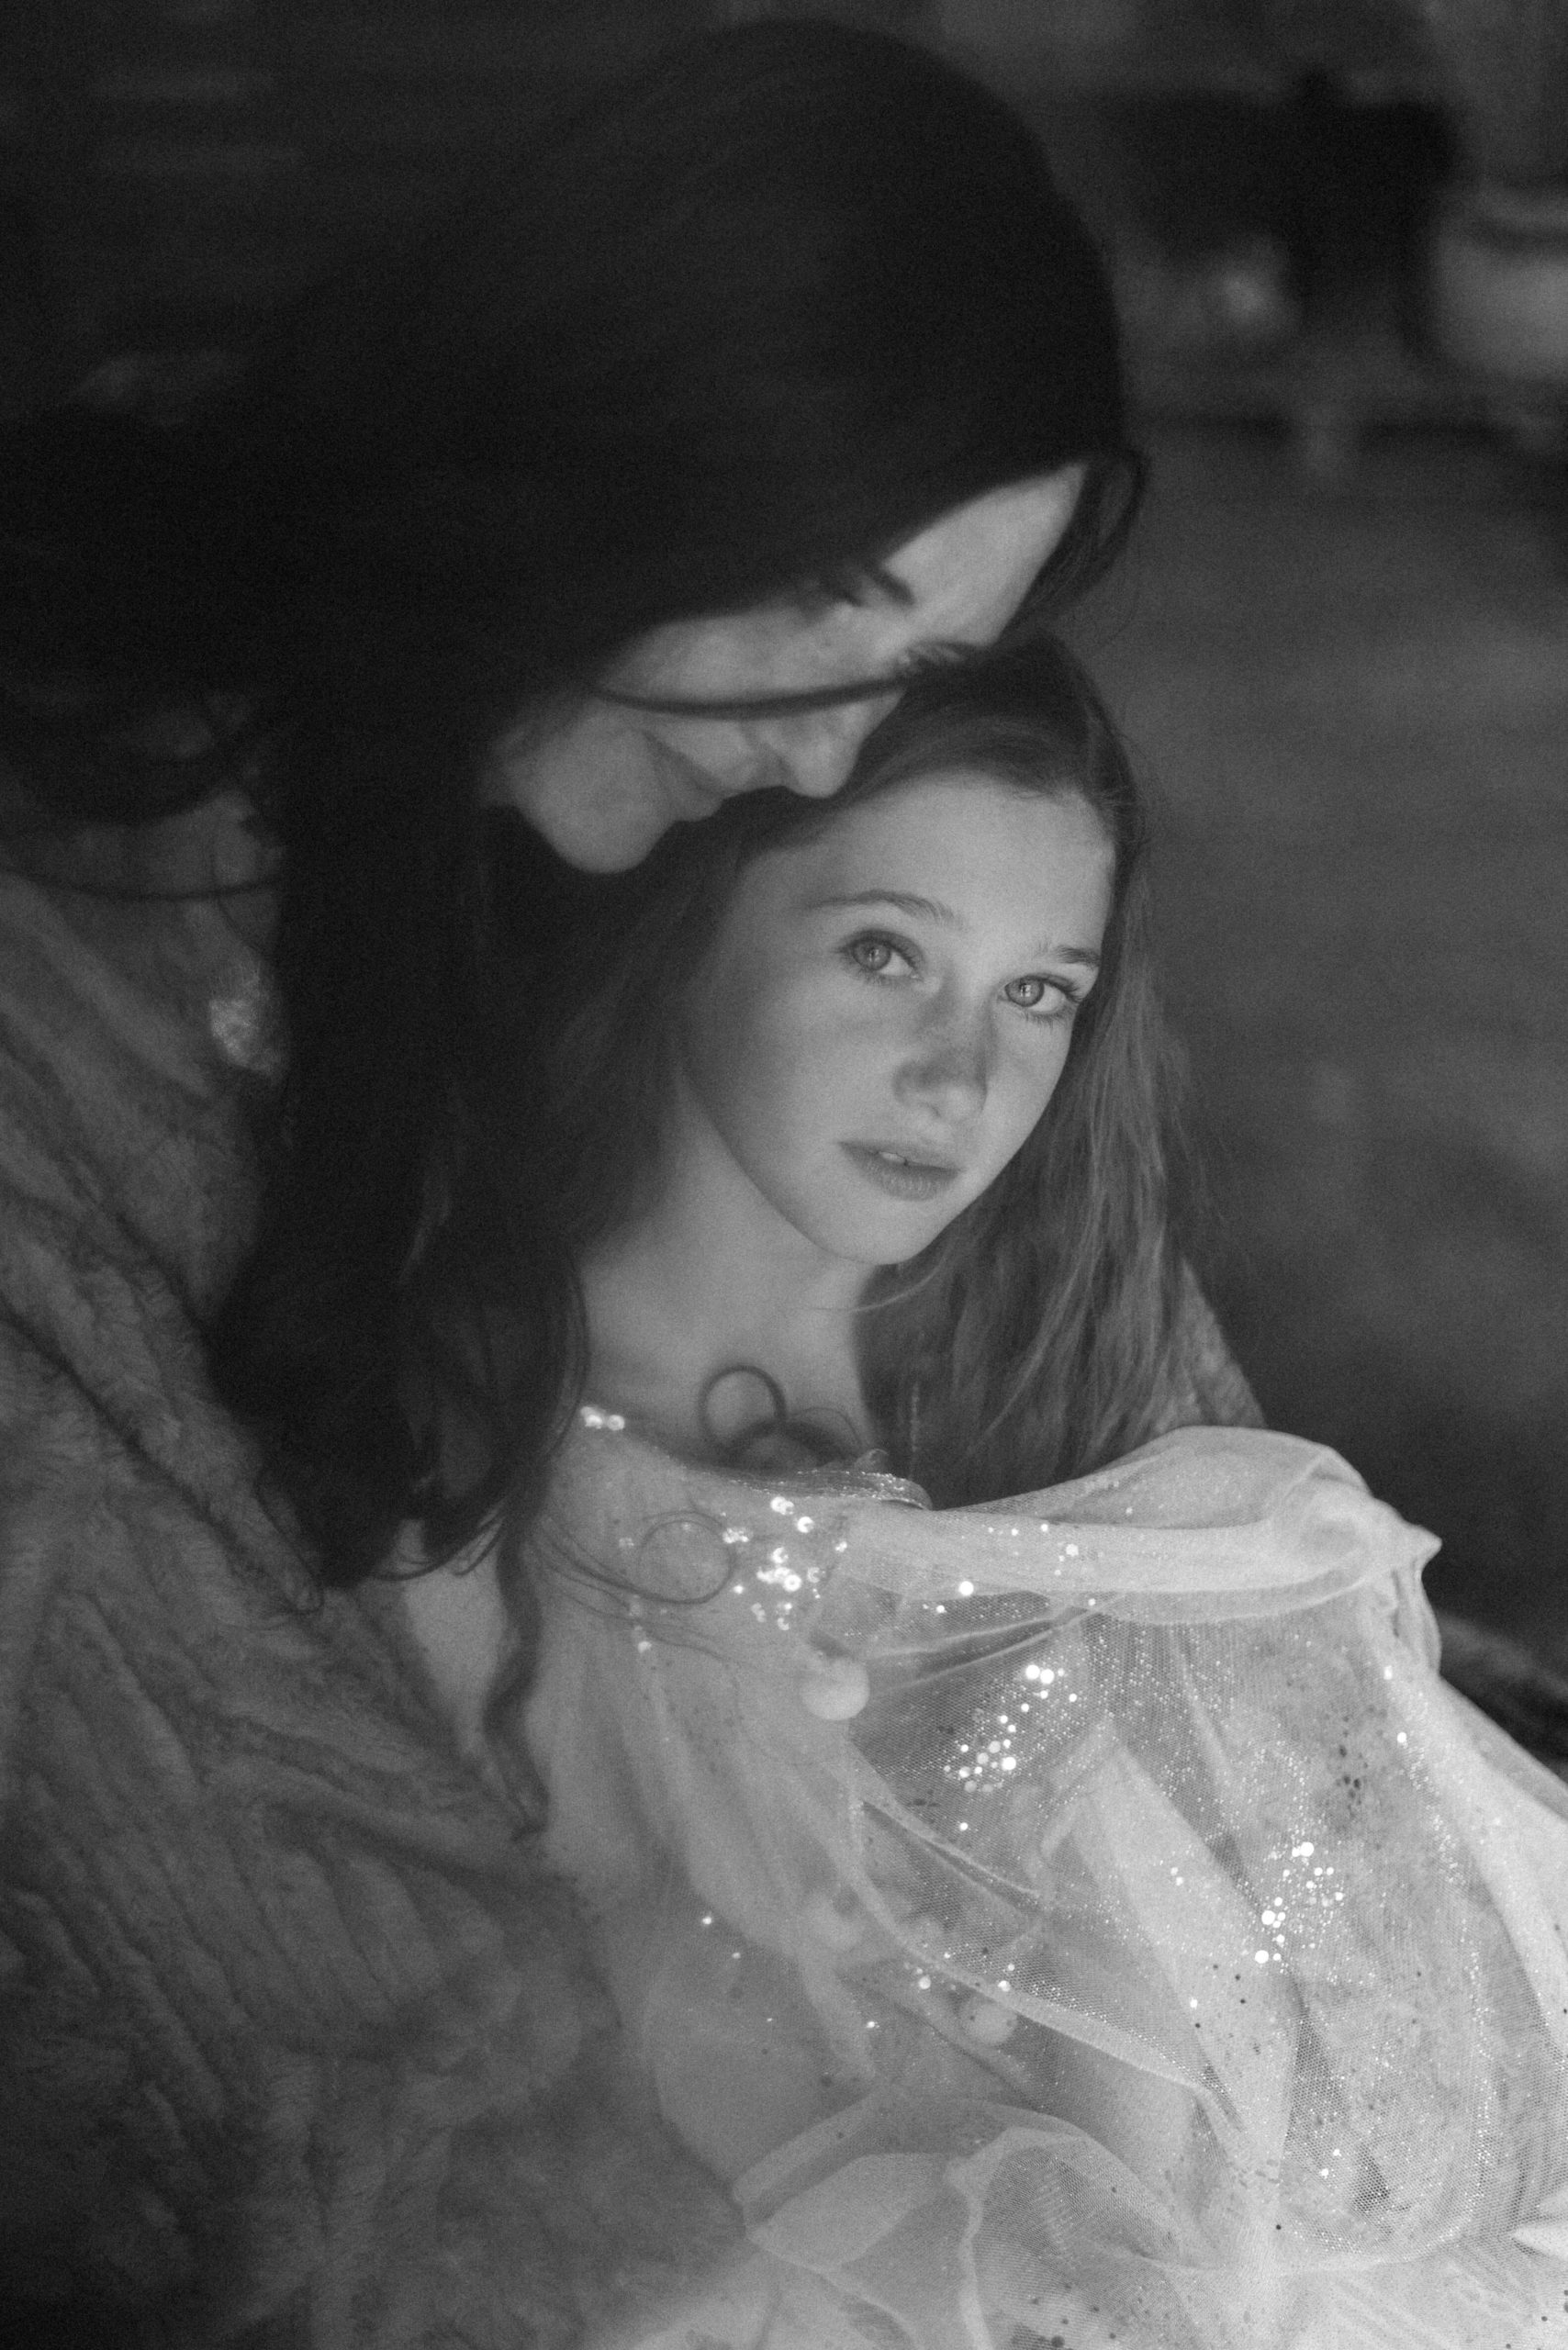 monochrome portrait of motherhood featuring mother and daughter in textured old fashioned photograph by Chelmsford photographer Kika Mitchell Photography